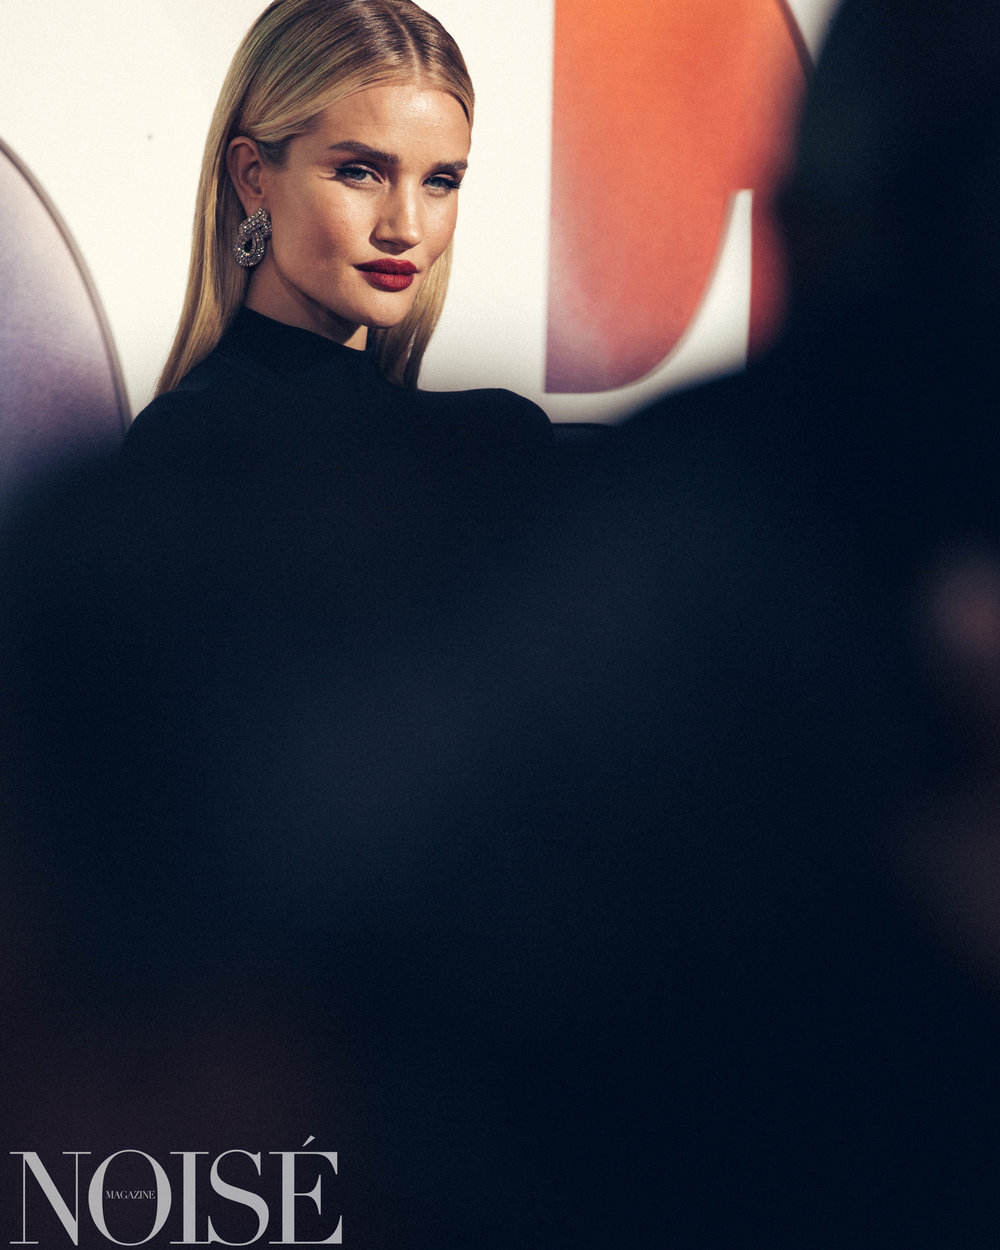 Rosie HW wearing The Row at BoF 500 gala, Photograph by Siyu Tang for NOISÉ